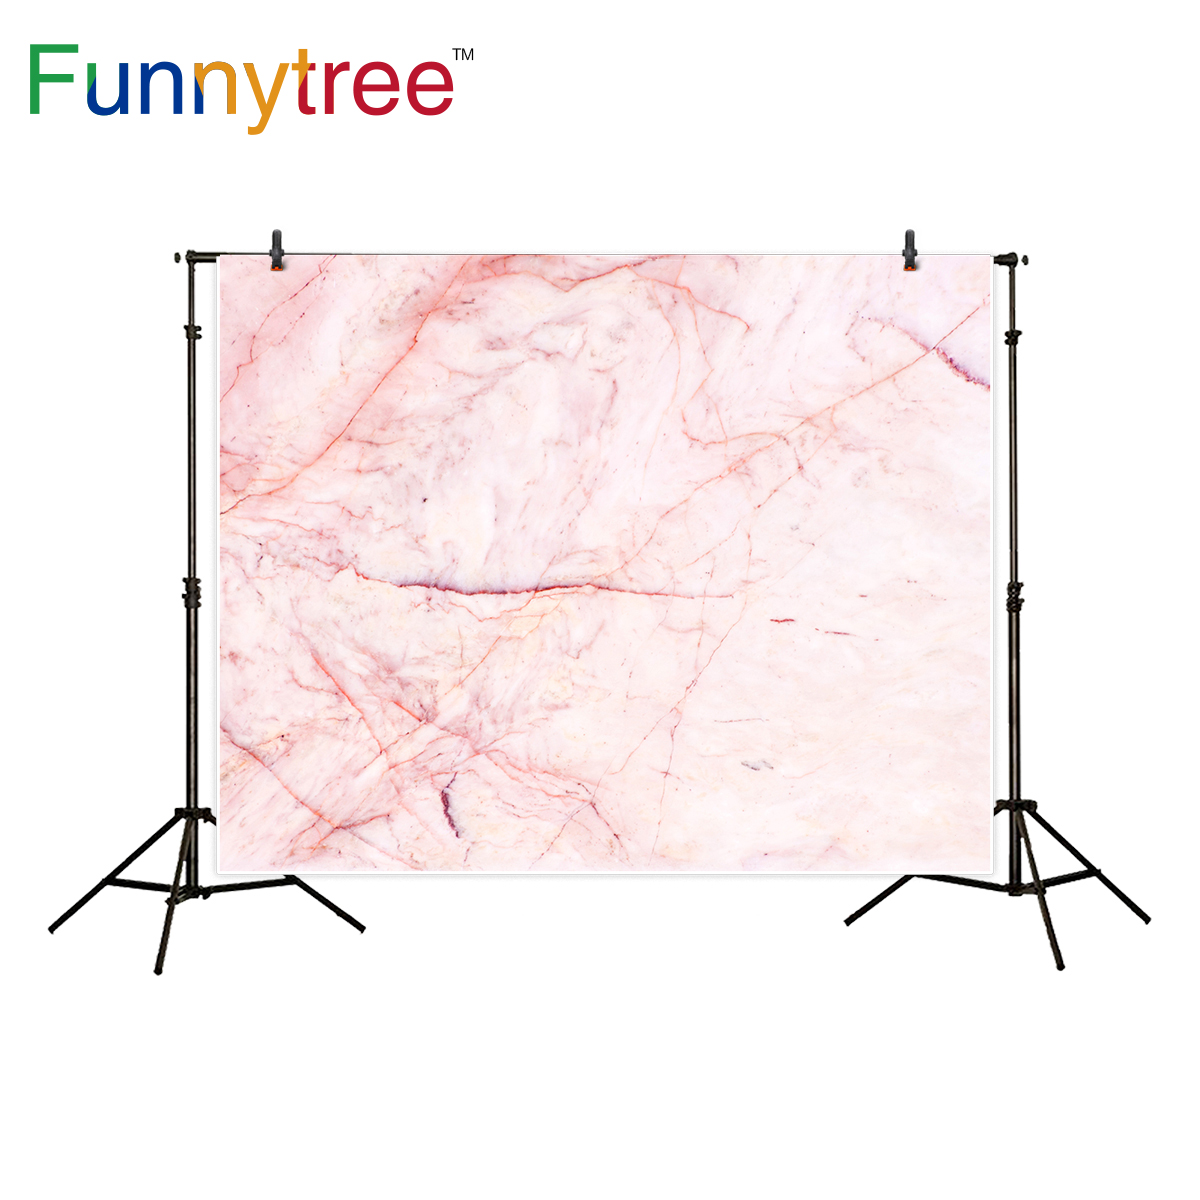 Funnytree backgrounds for photography studio pink marble wedding decor photographic backdrop photocall photo prop printed fond studio photography backdrop prop white wooden door pink petal vinyl photo backgrounds for photo studio for wedding children